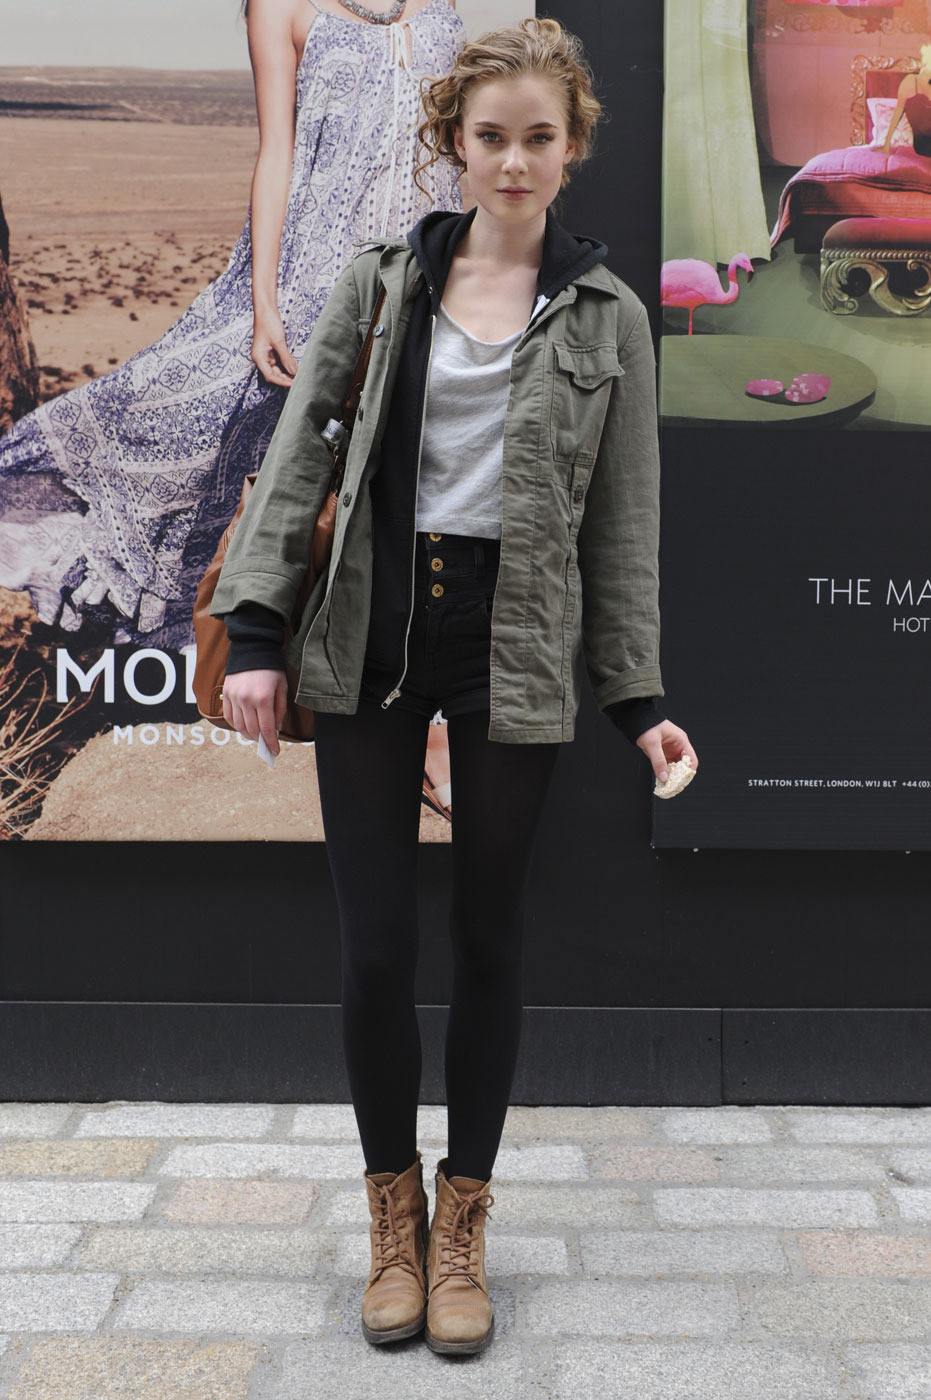 Love The Jacket Street Style From London Fashion Week